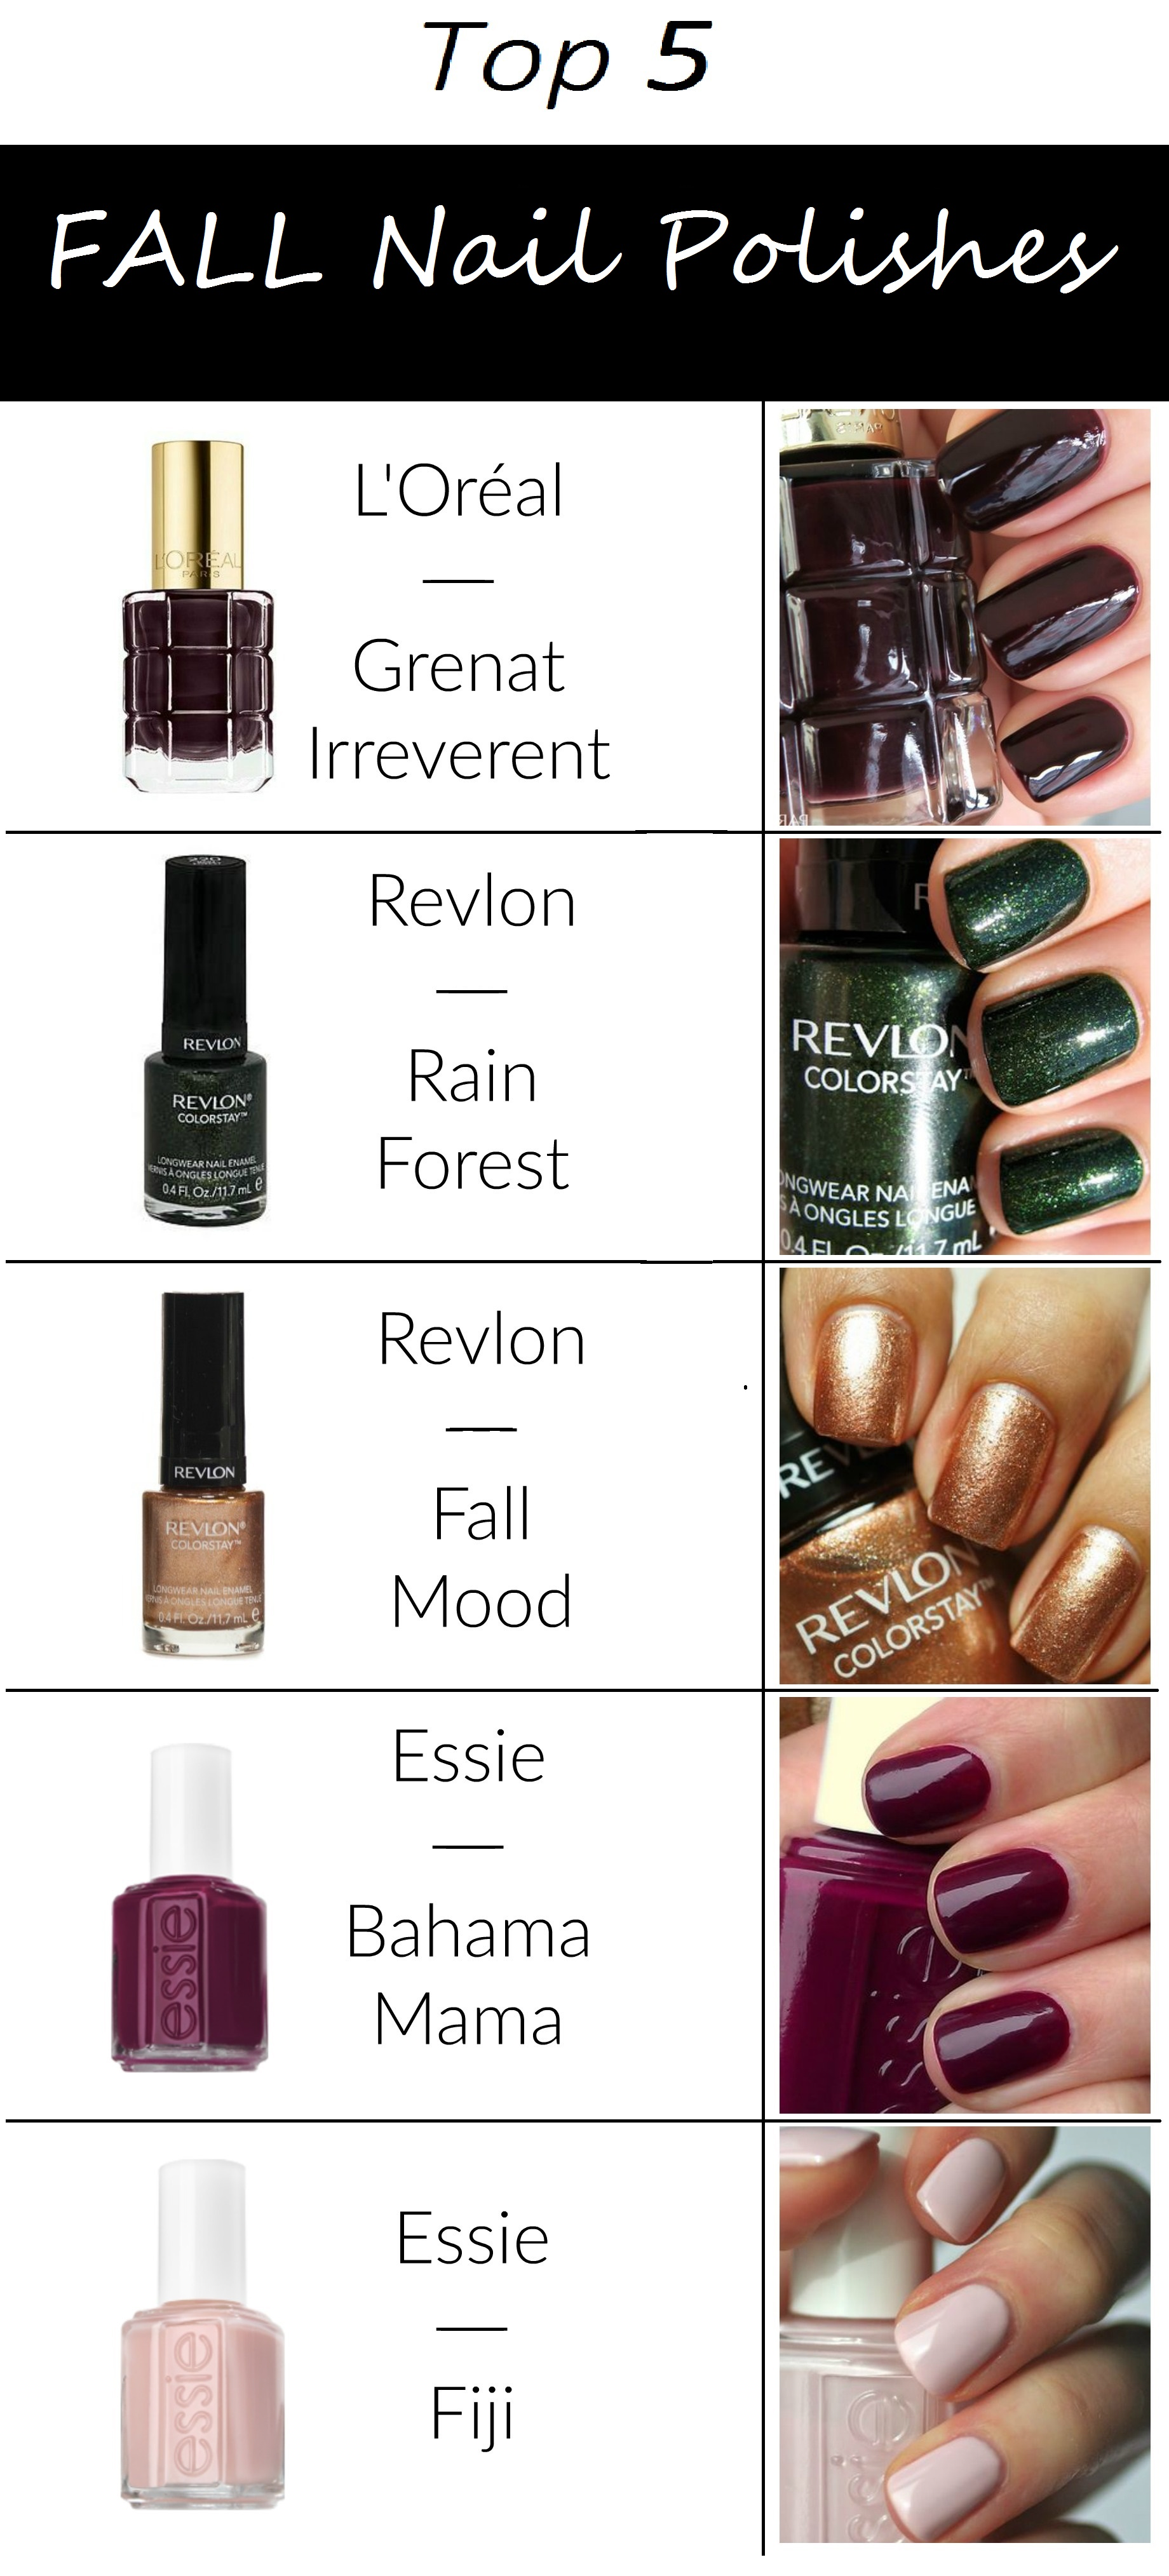 Fall Must Have Nail Polishes